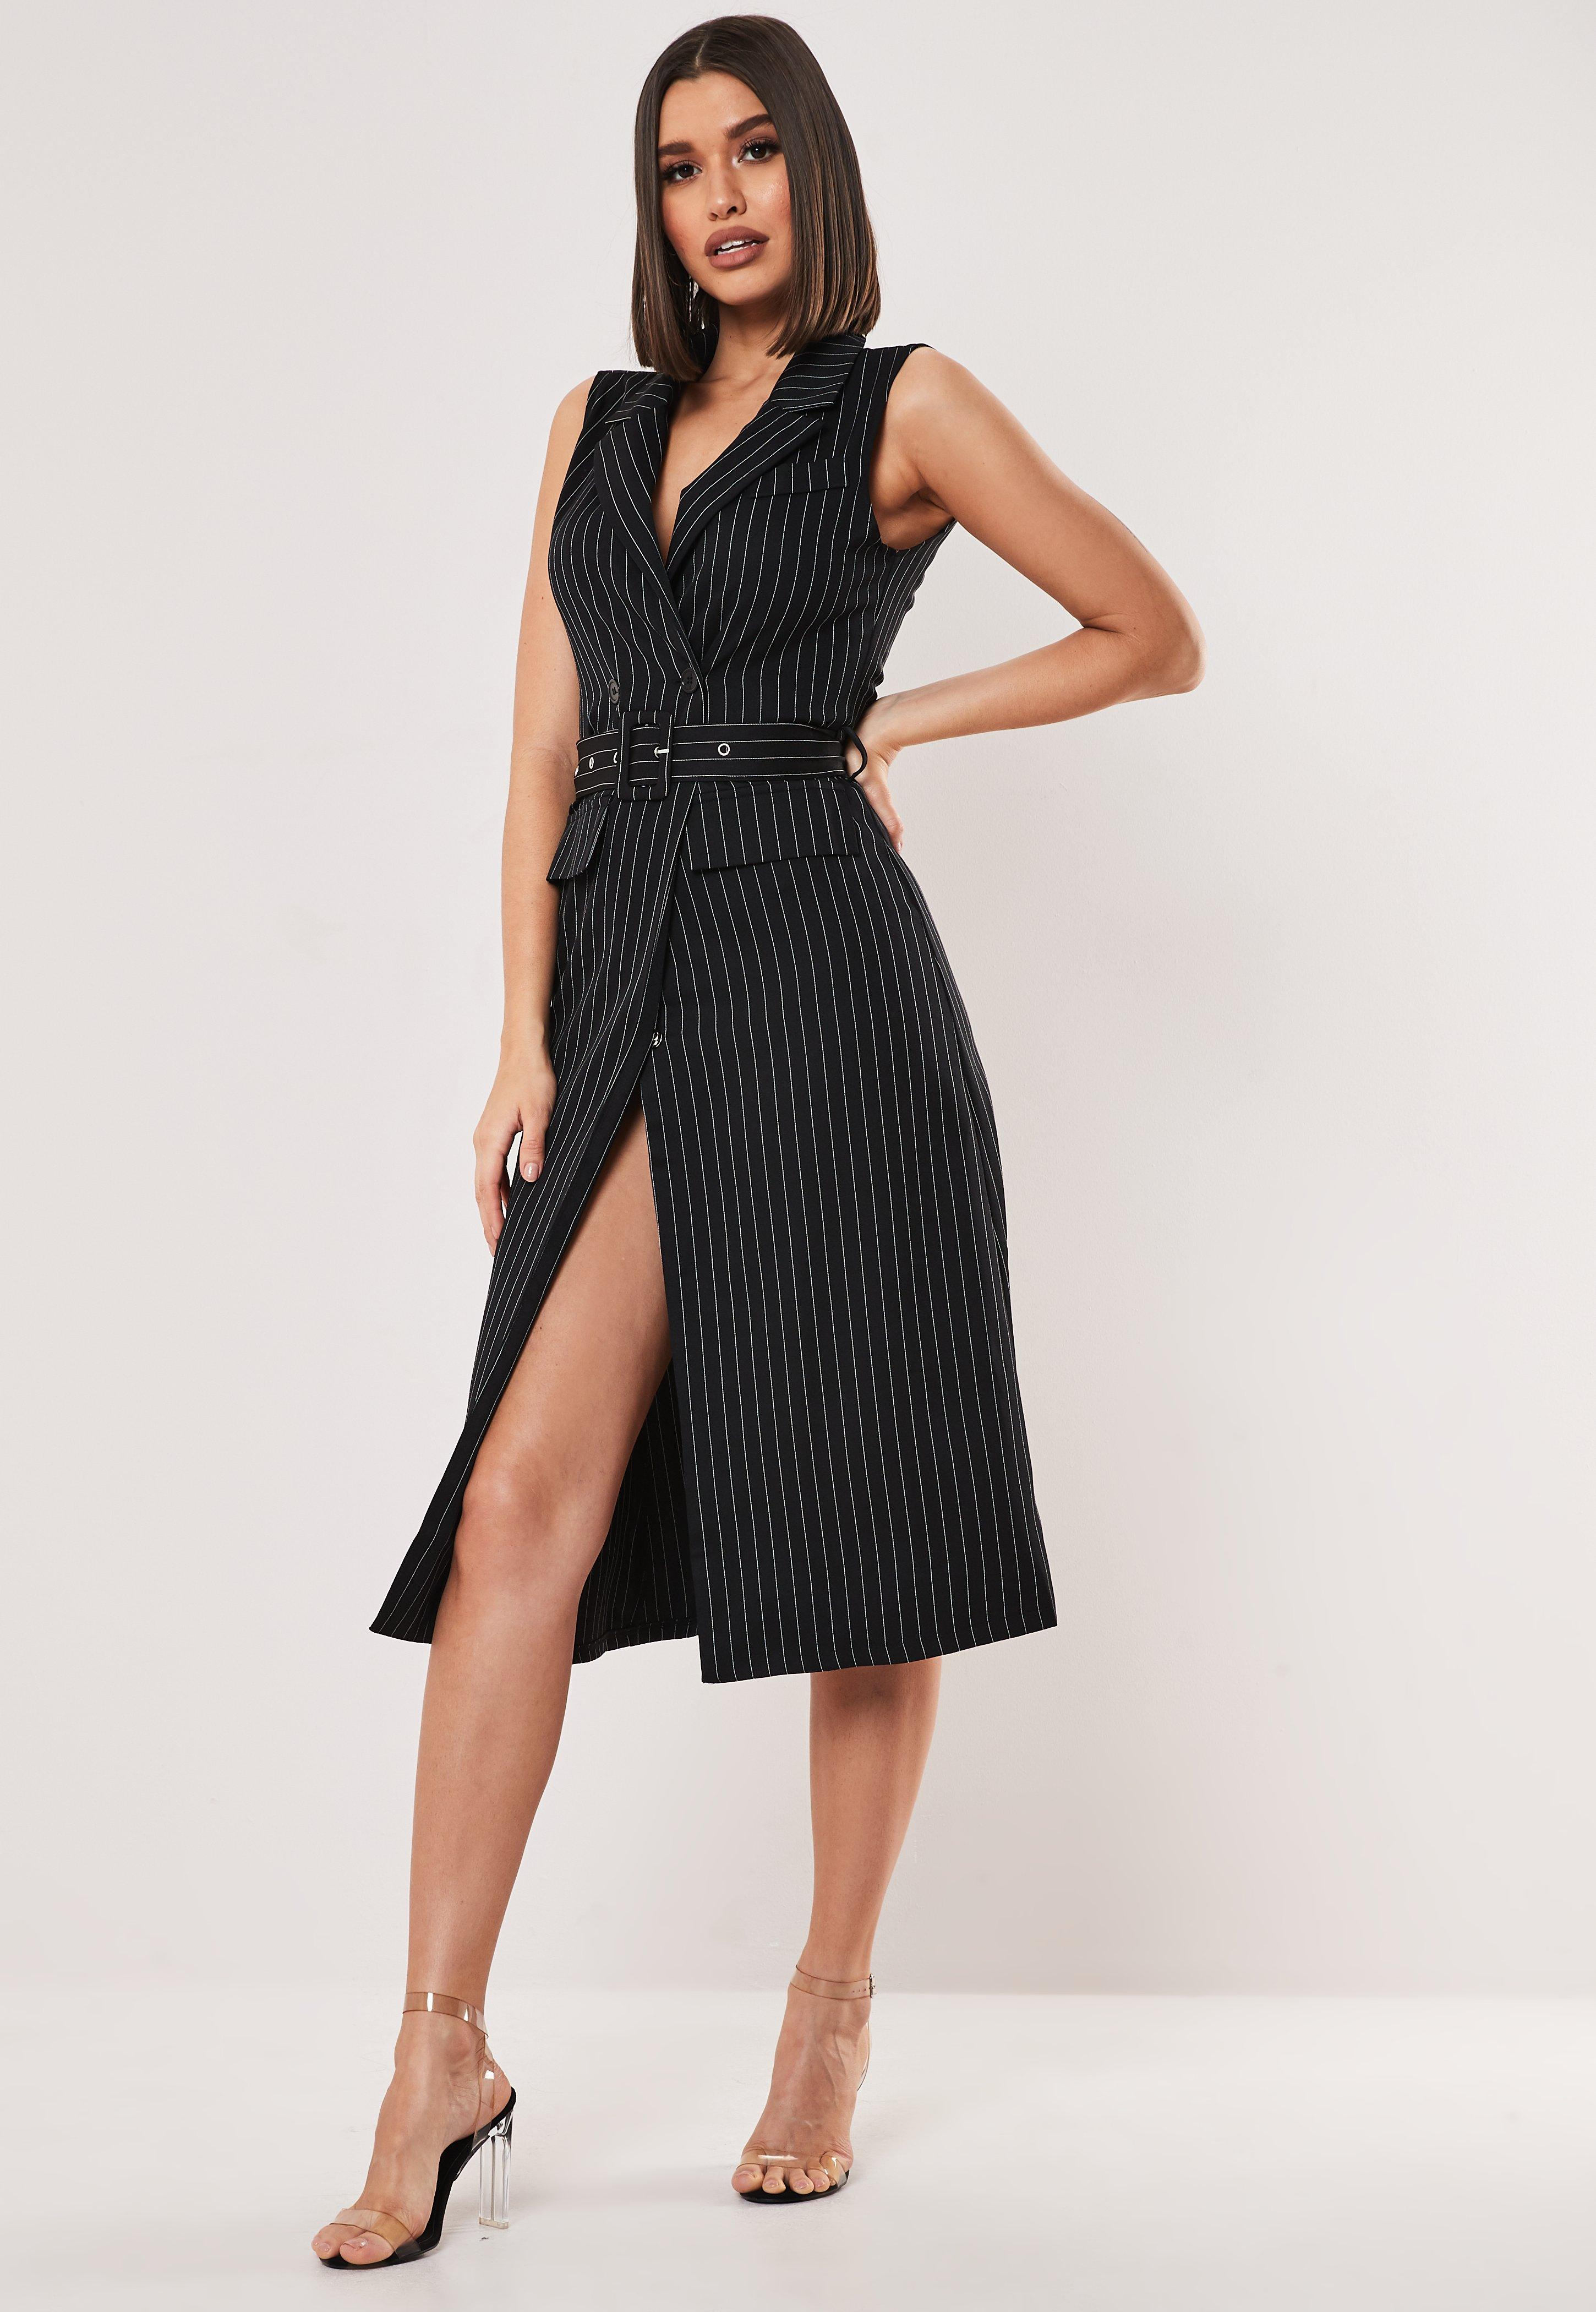 daf8e4241c205b Party Dresses | Sexy Party Dress | Going Out Dresses | Missguided